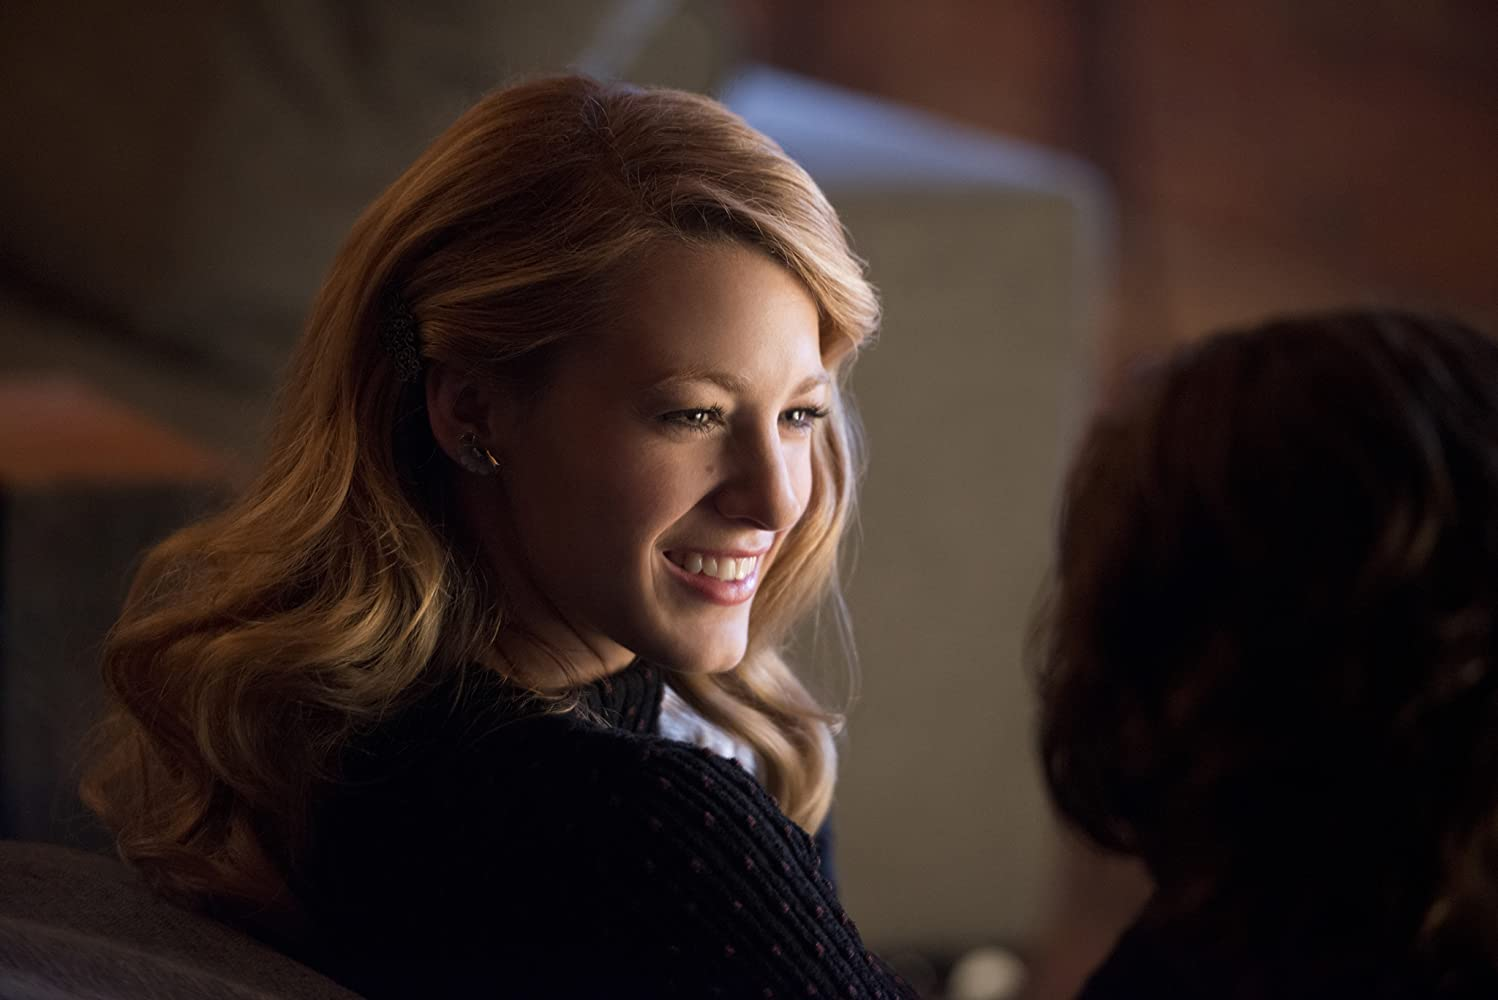 Blake Lively in The Age of Adaline (2015)